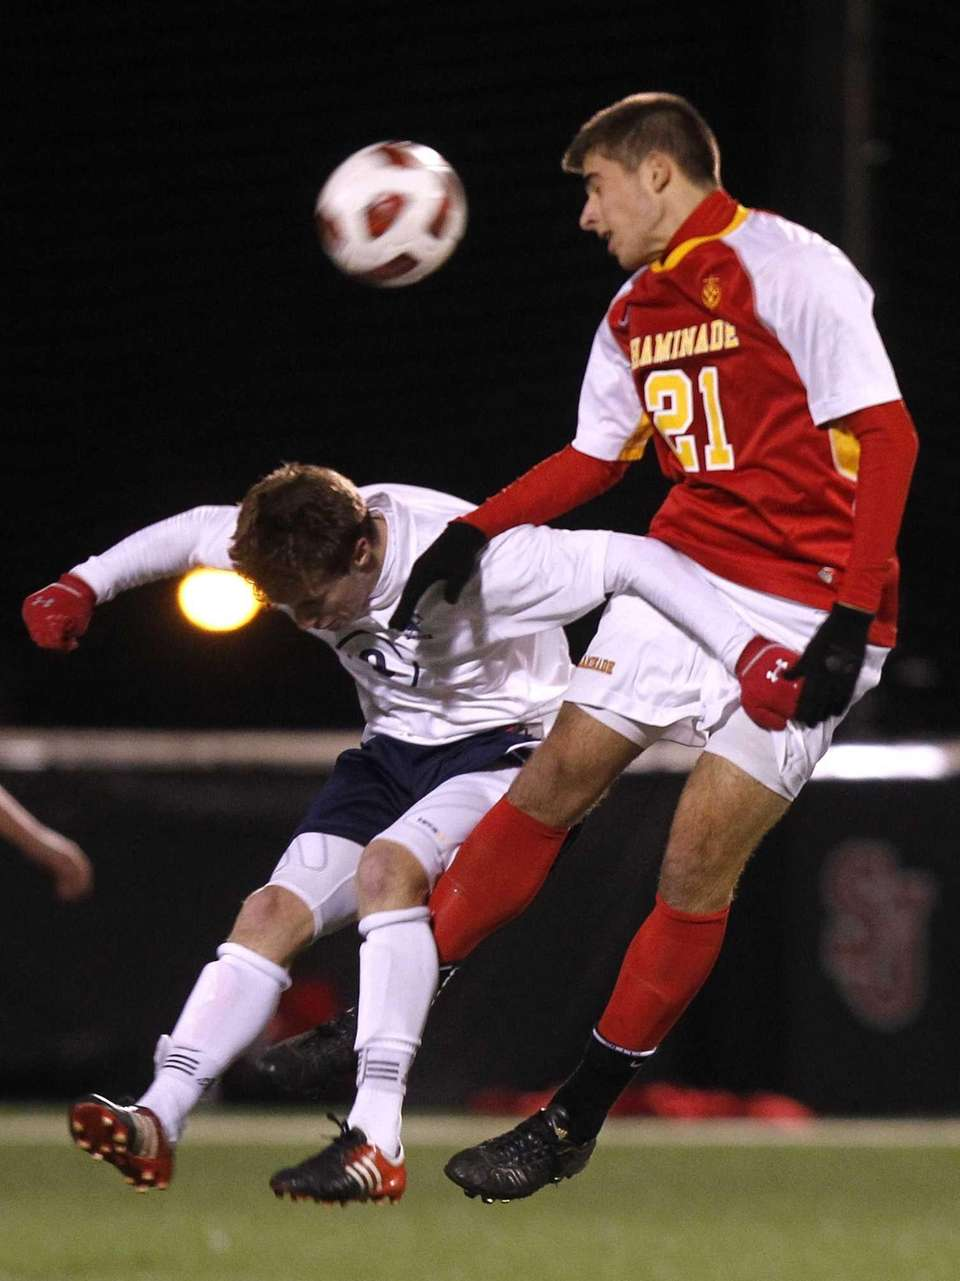 Chaminade's Hunter Frey heads the ball away from